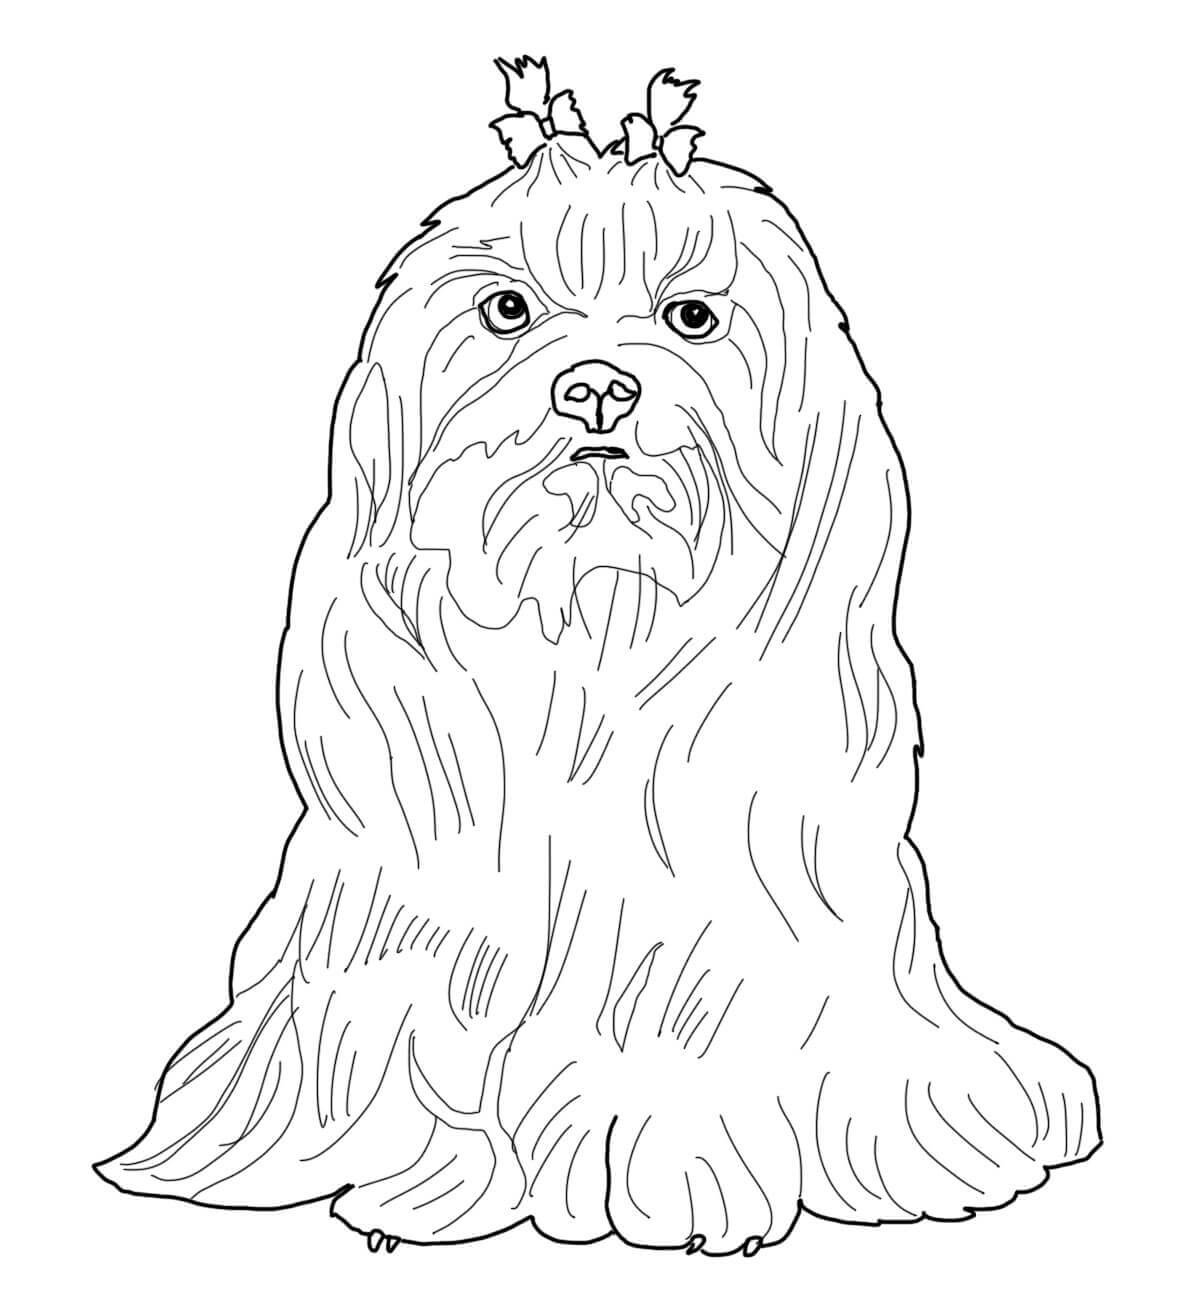 Maltese dog Coloring Page